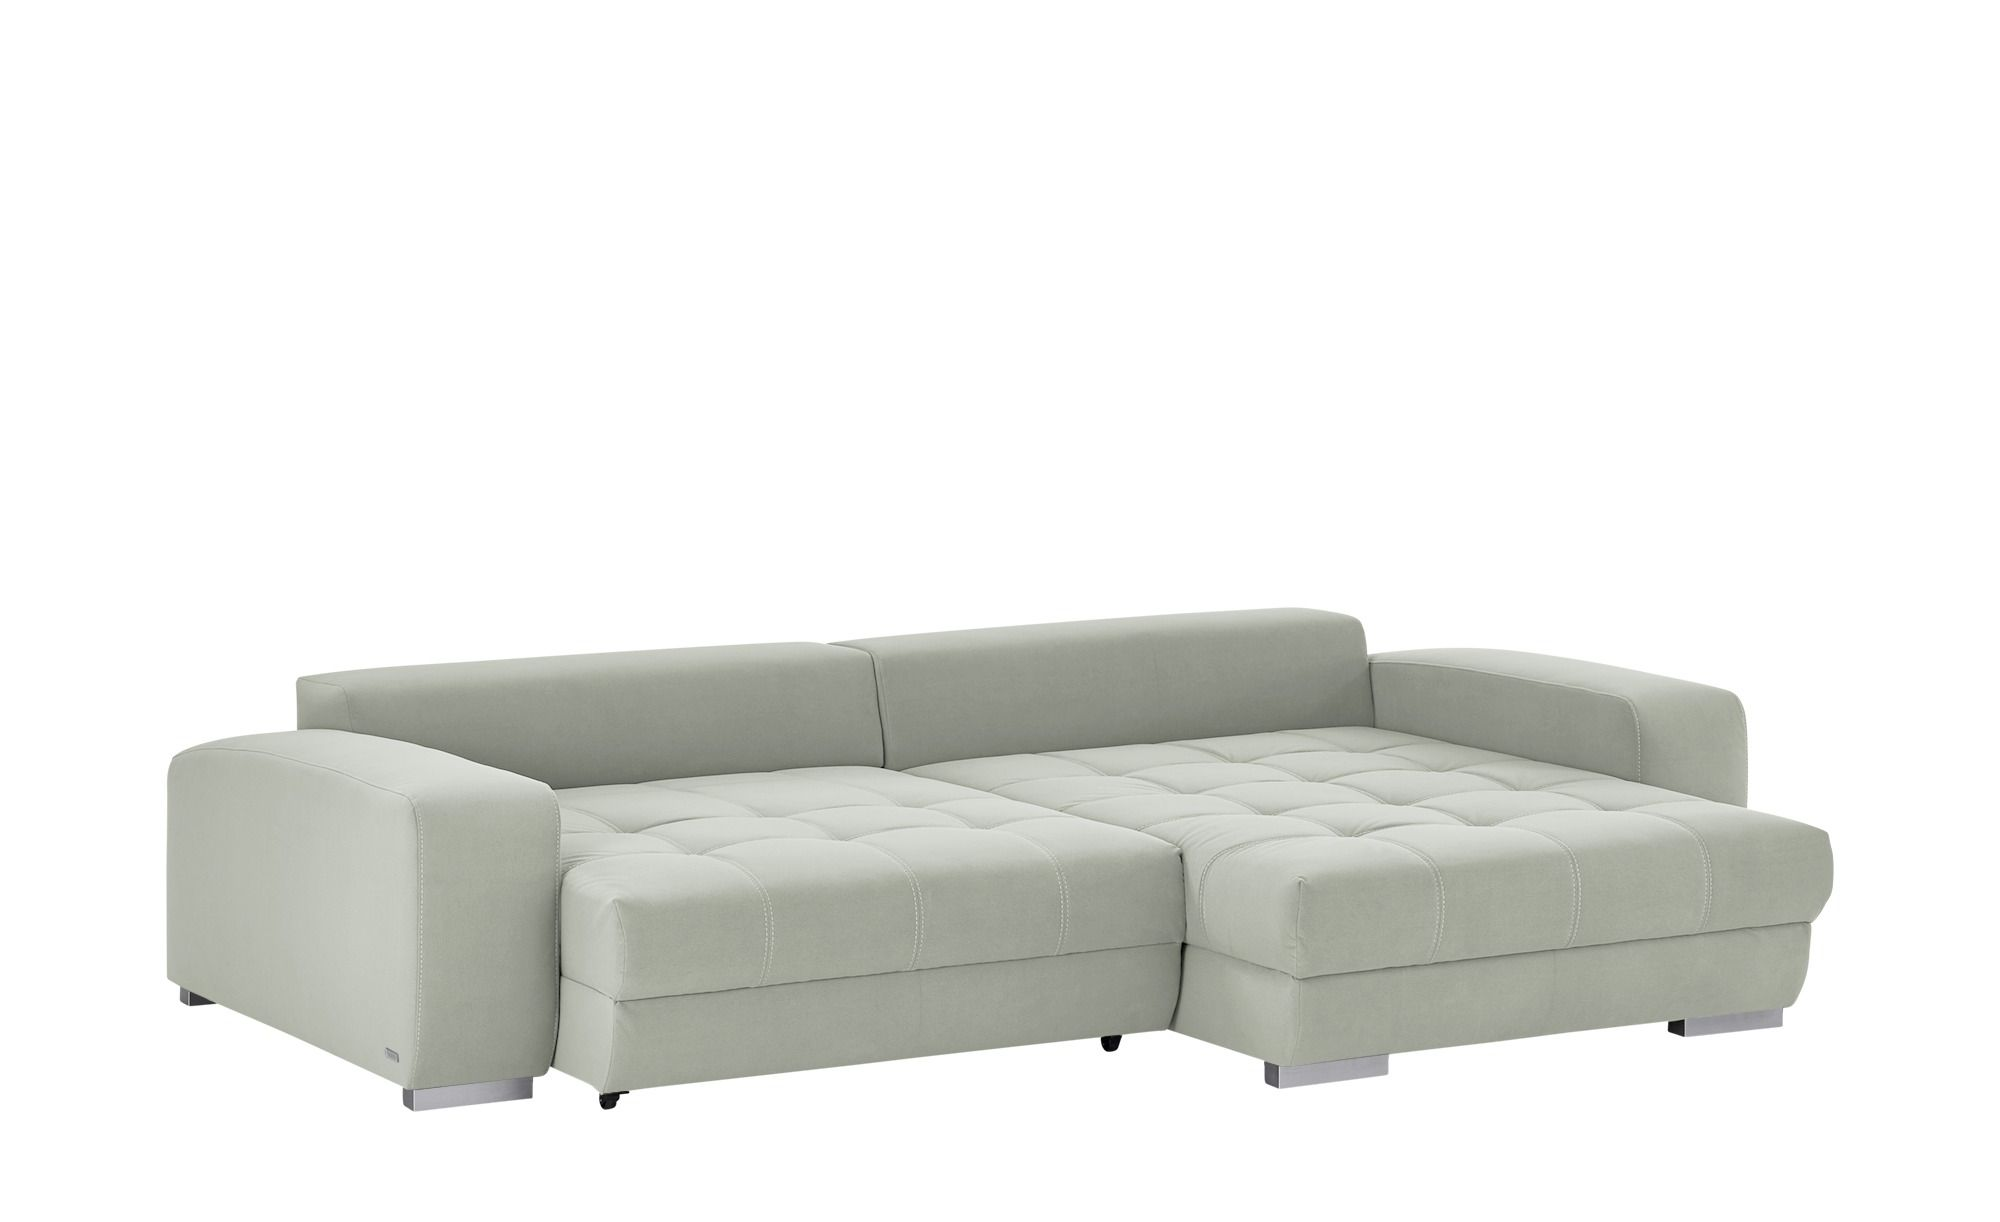 Bobb Ecksofa Caro Sectional Couch Couch Sofa